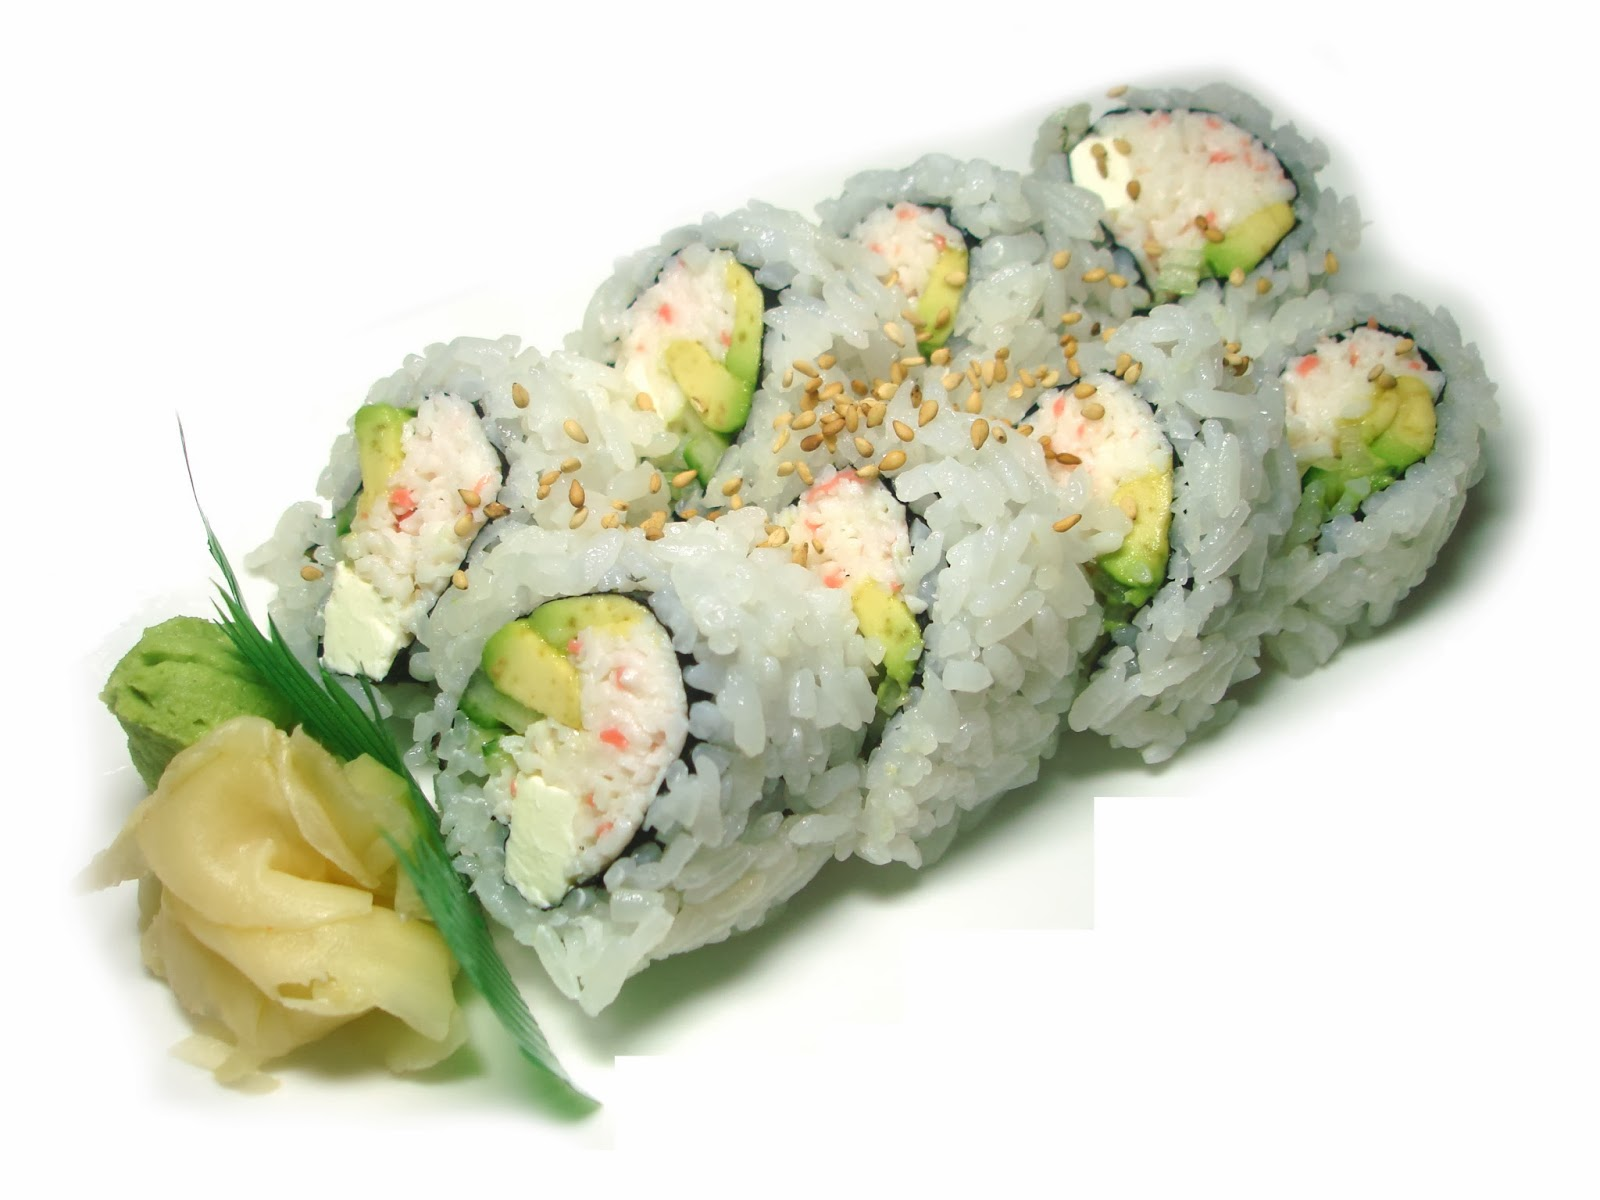 California Roll $4